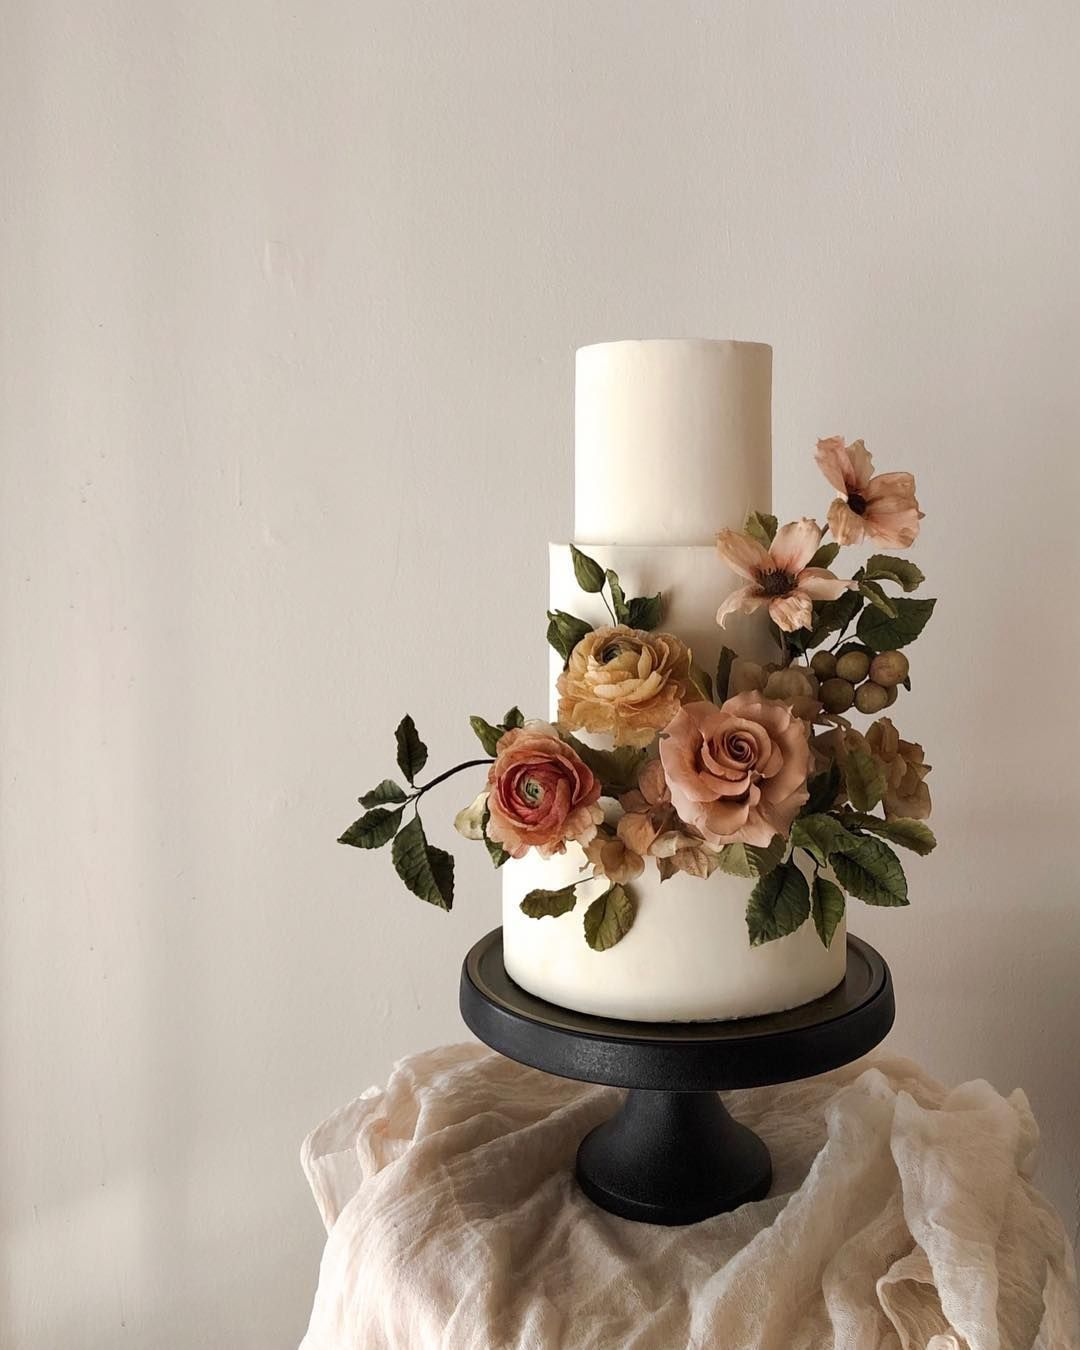 Design Your Own Wedding Cake: When You Put All Your Favourite Sugar Flowers Together